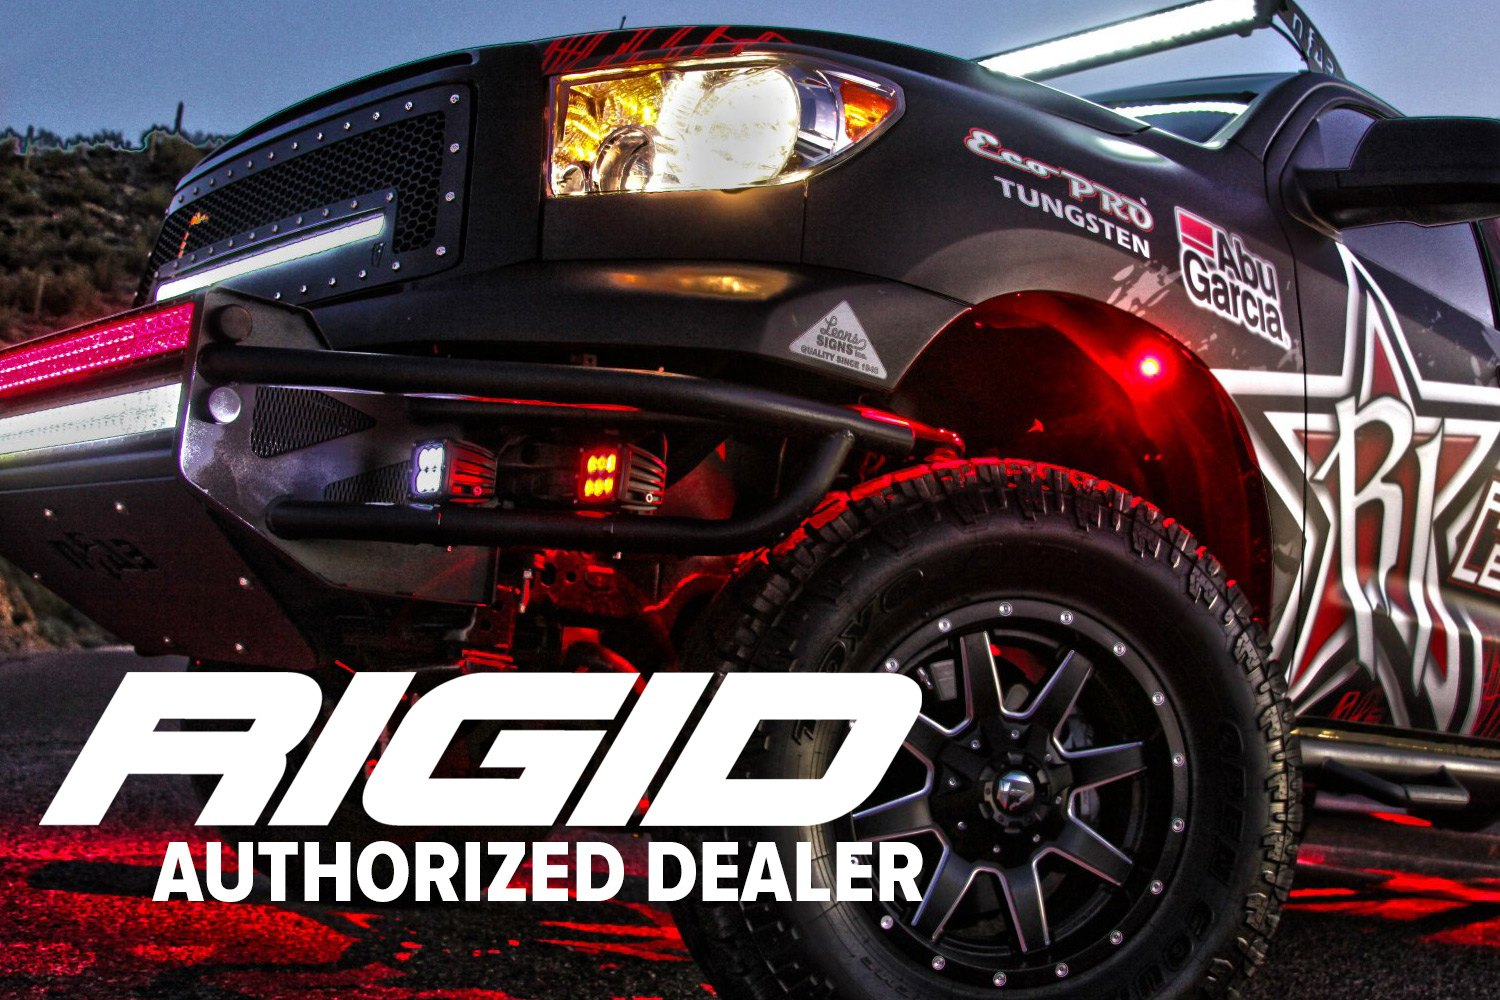 hight resolution of rigid industries authorized dealer